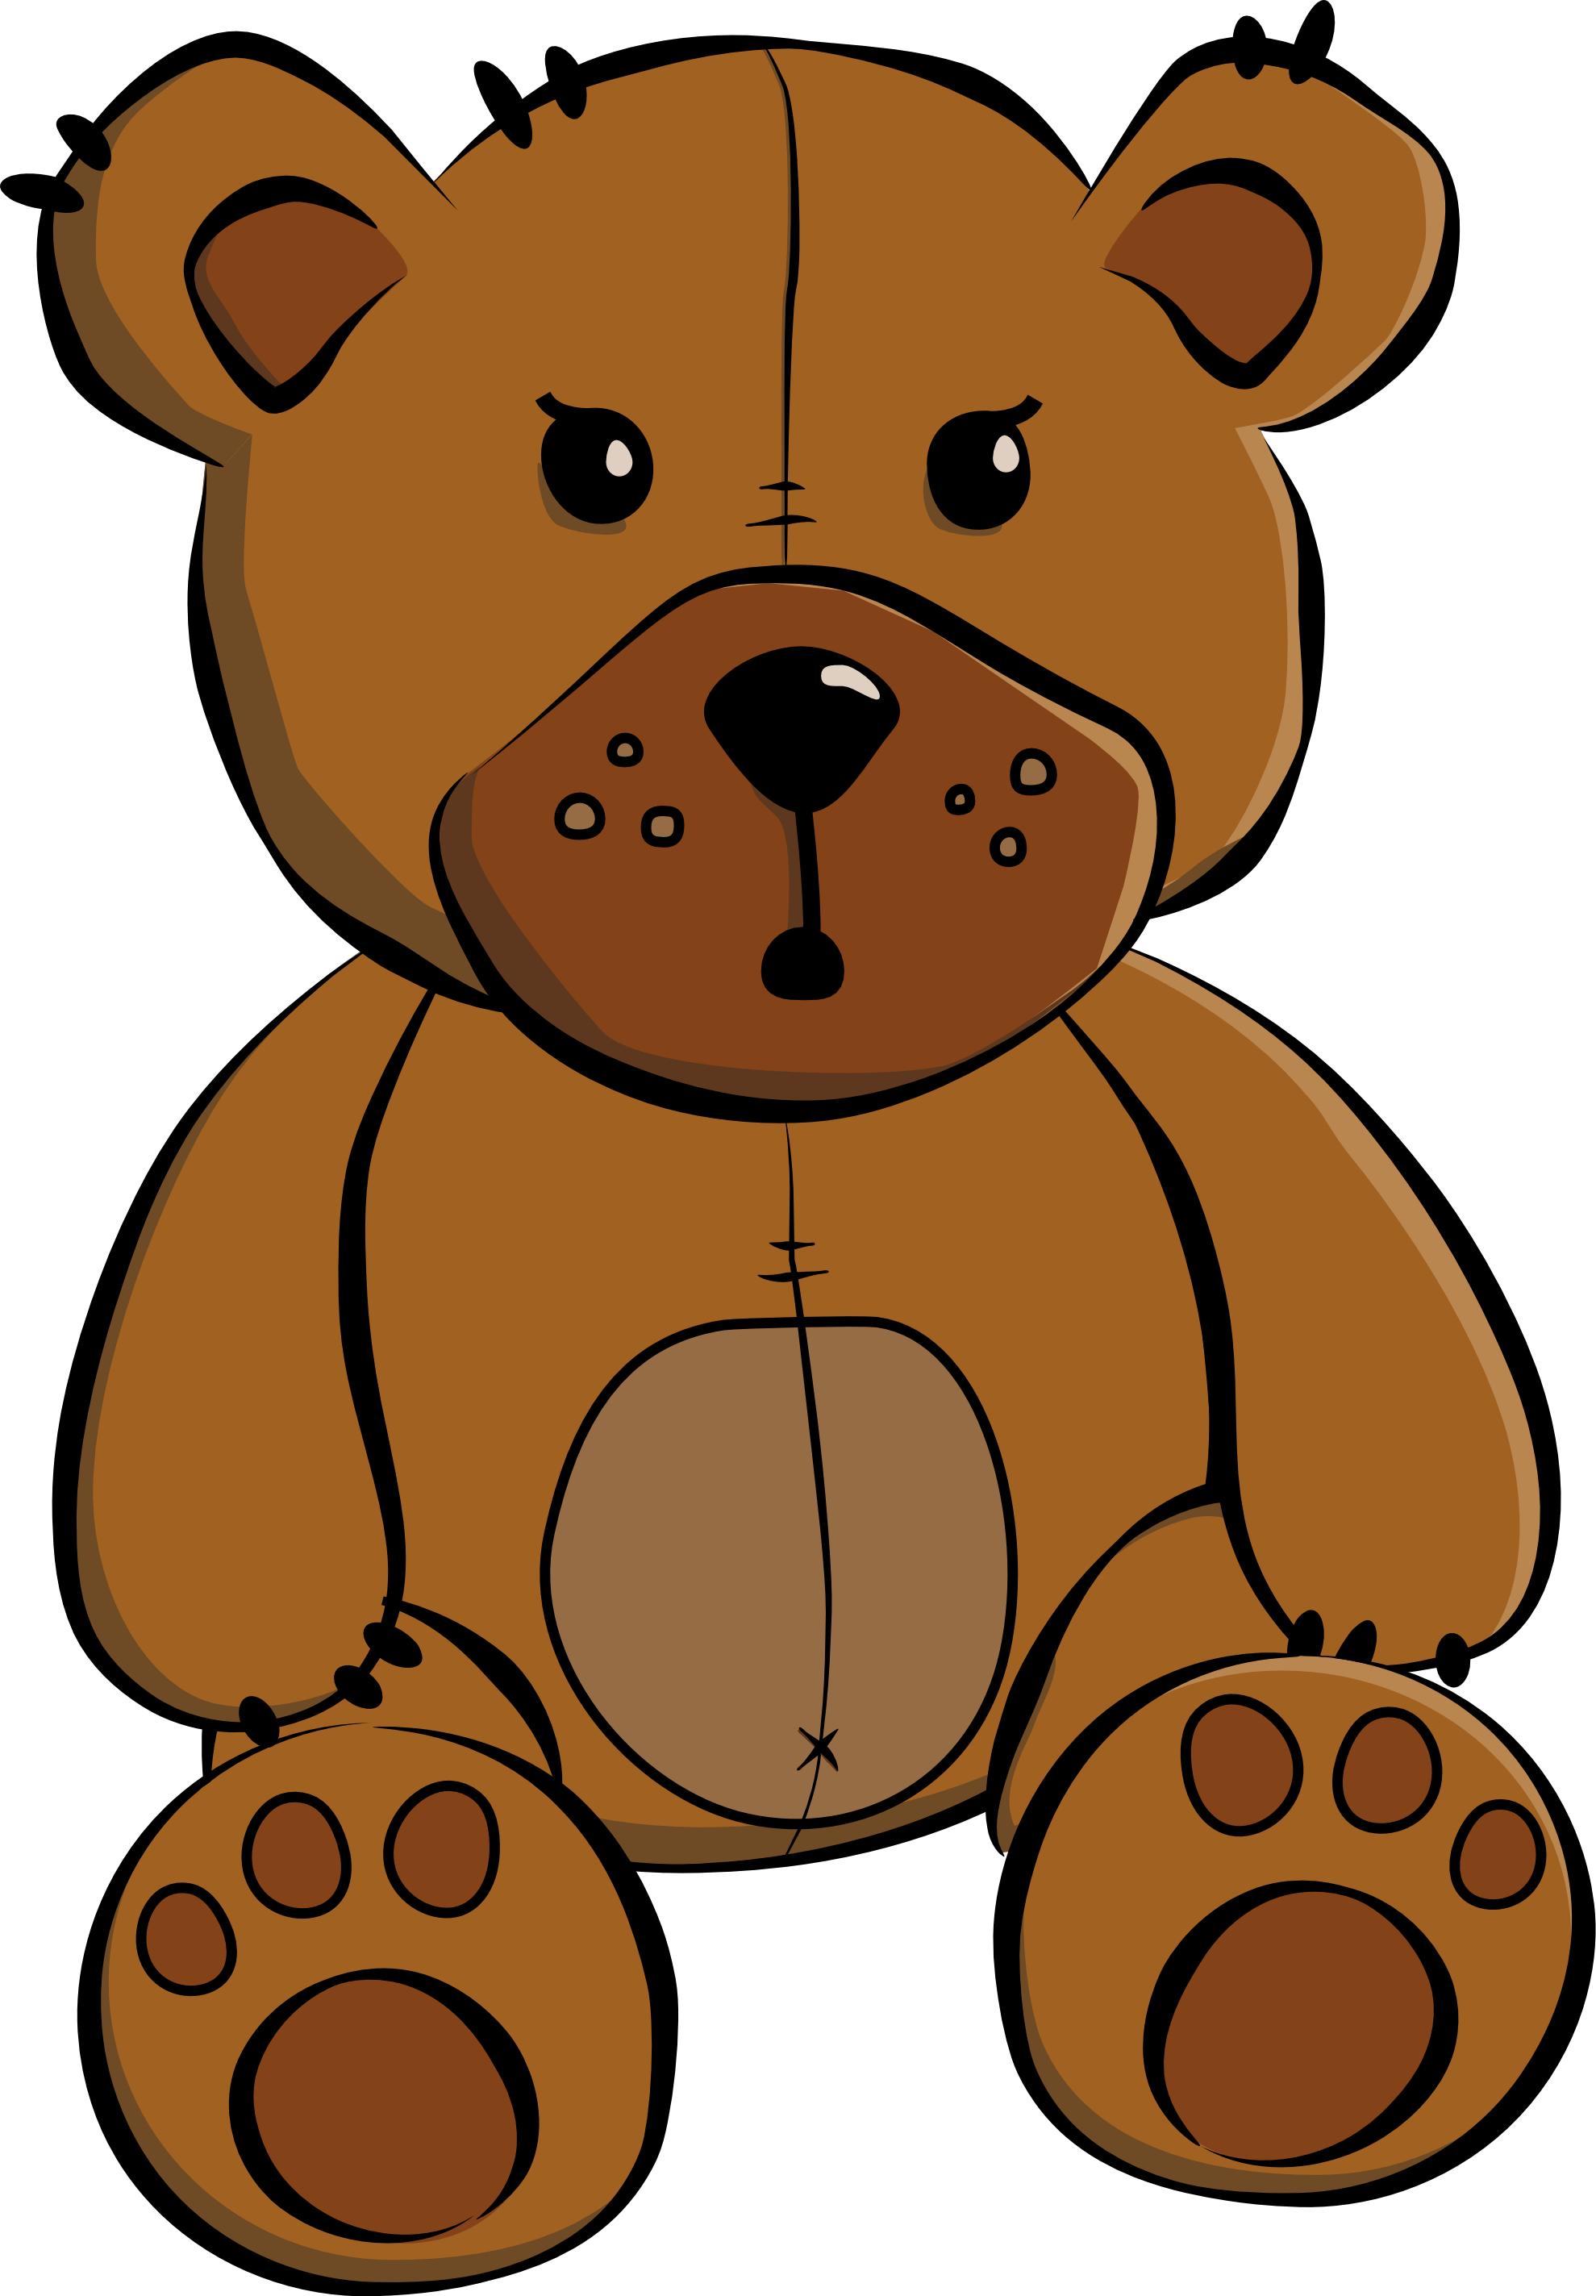 Brown Bear Clipart - Cliparts.co